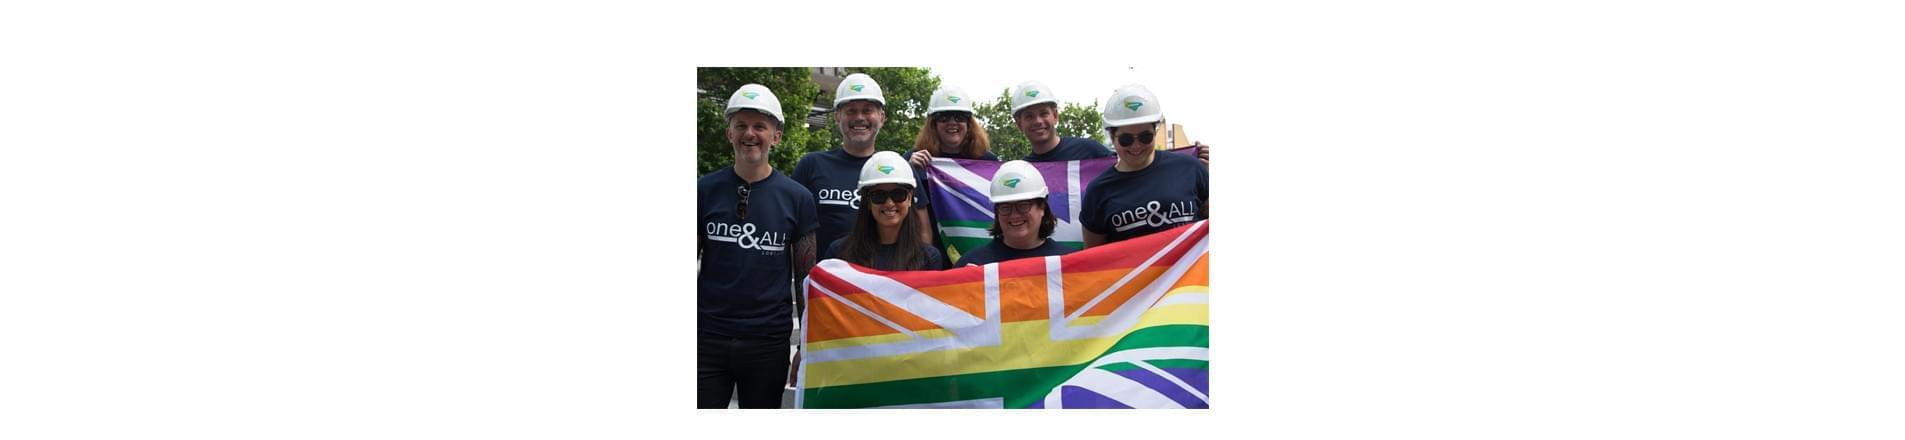 a group of seven Lendlease employees wearing Lendlease branded hard hats. They are holding British rainbow flags and wearing tops that read 'One and All'.